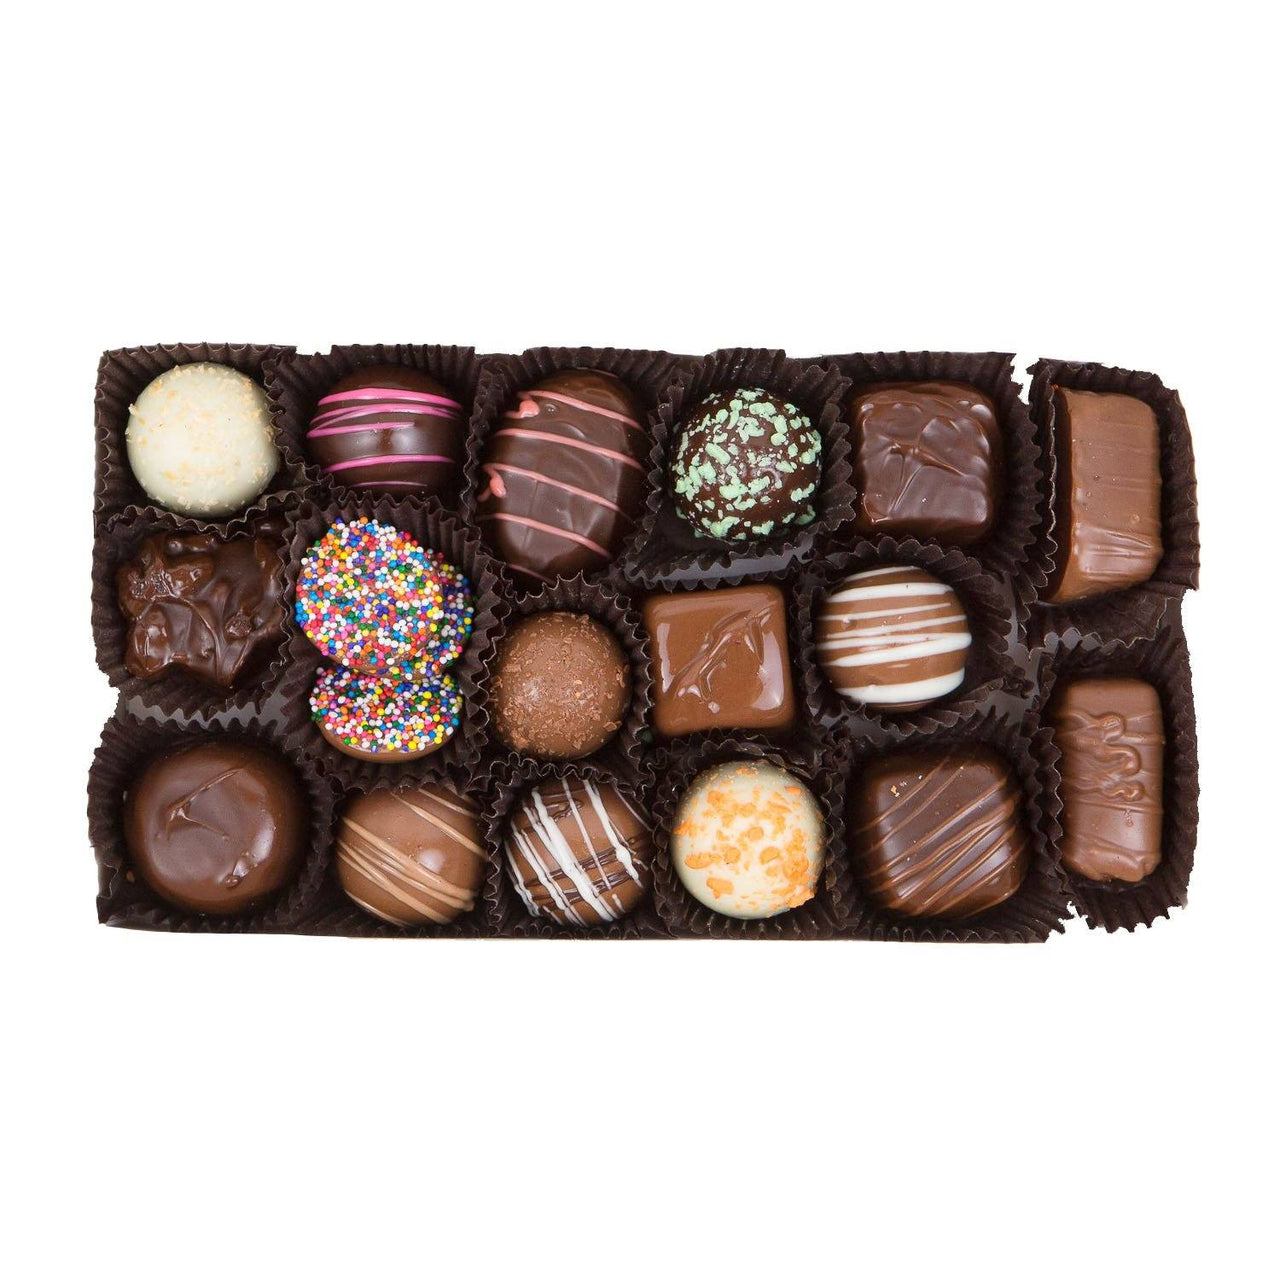 Last Minute Gifts - Assorted Chocolate Gift Box - Jackie's Chocolate (1487131541539)